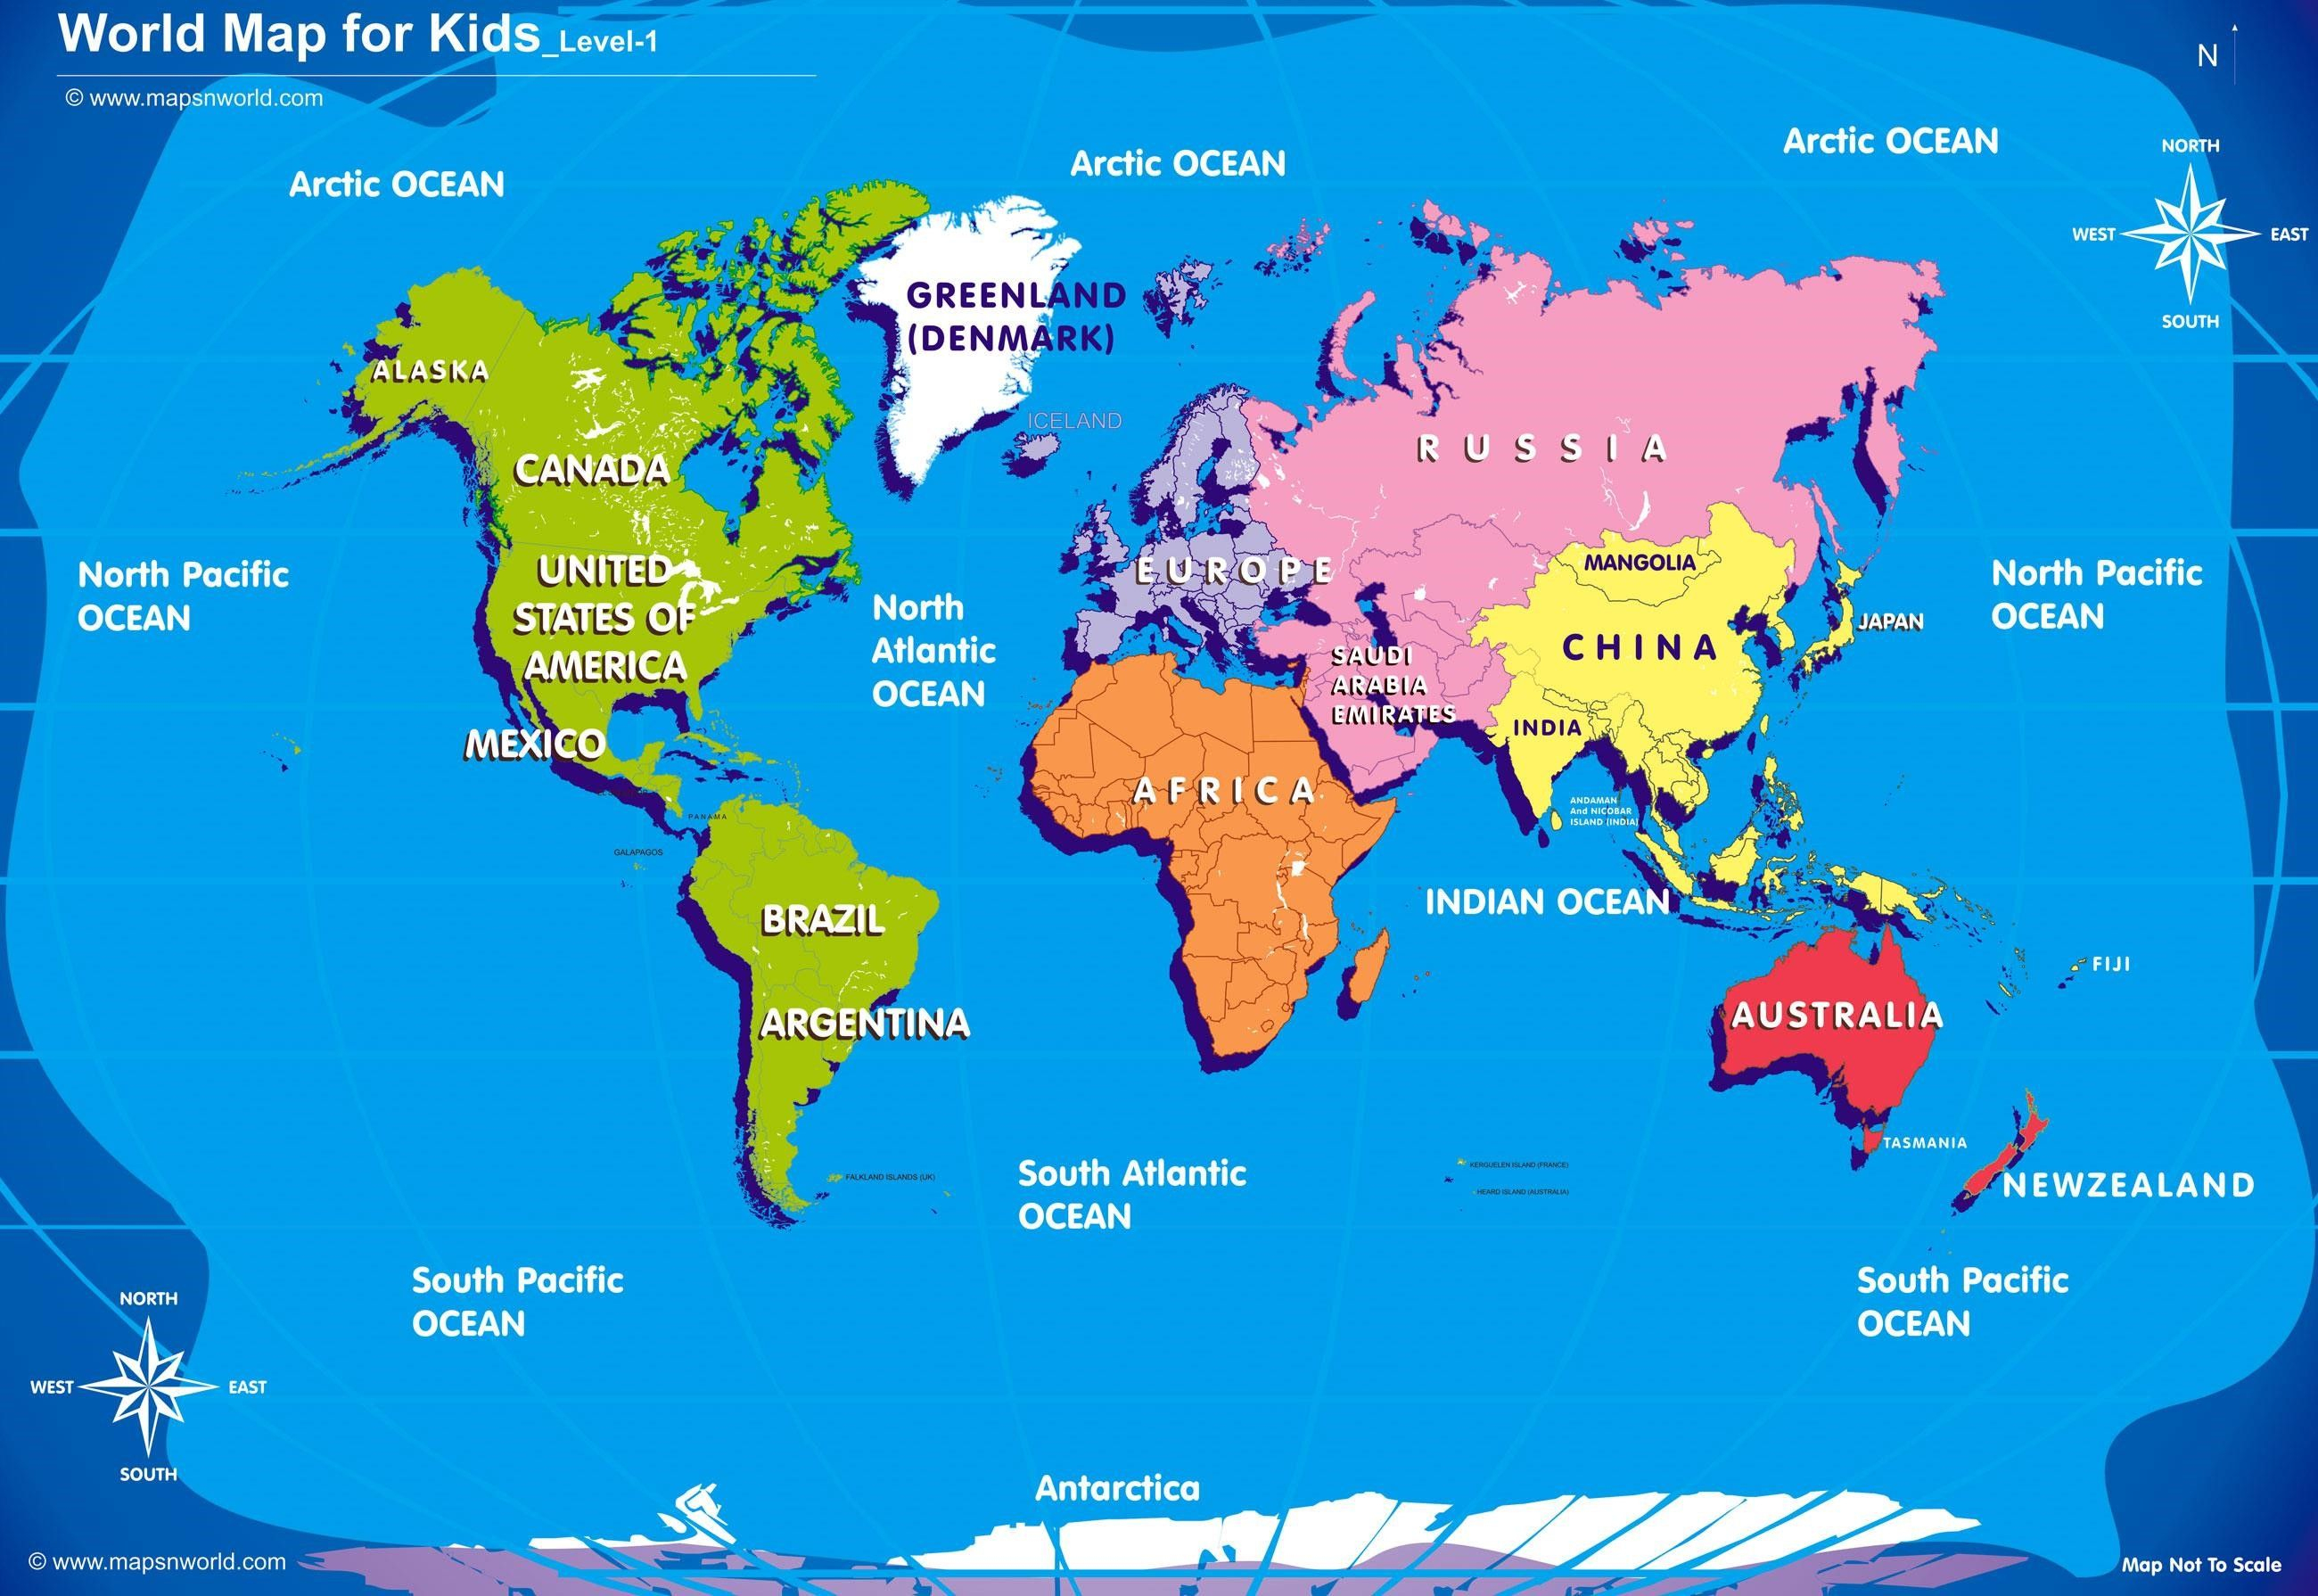 World-Map-For-Kids-Big-Size-W-R-Ibackgroundzcom | At Home Preschool - Children's Map Of The World Printable